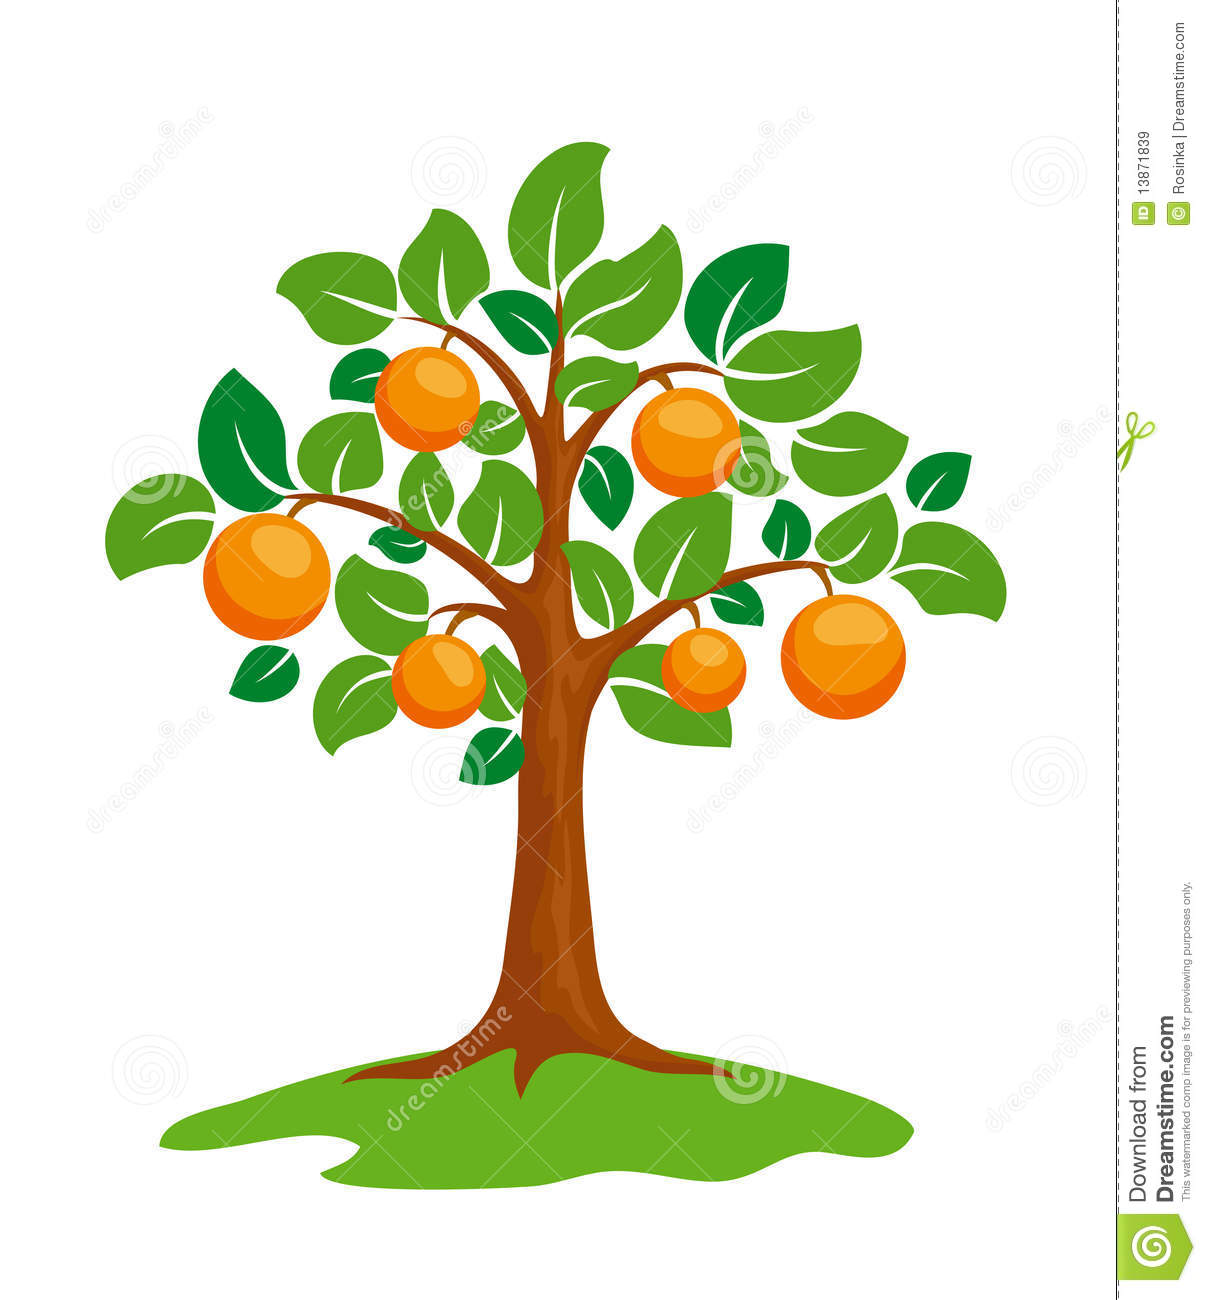 There Is 35 Peach Tree Farm Free Cliparts All Used For Free.